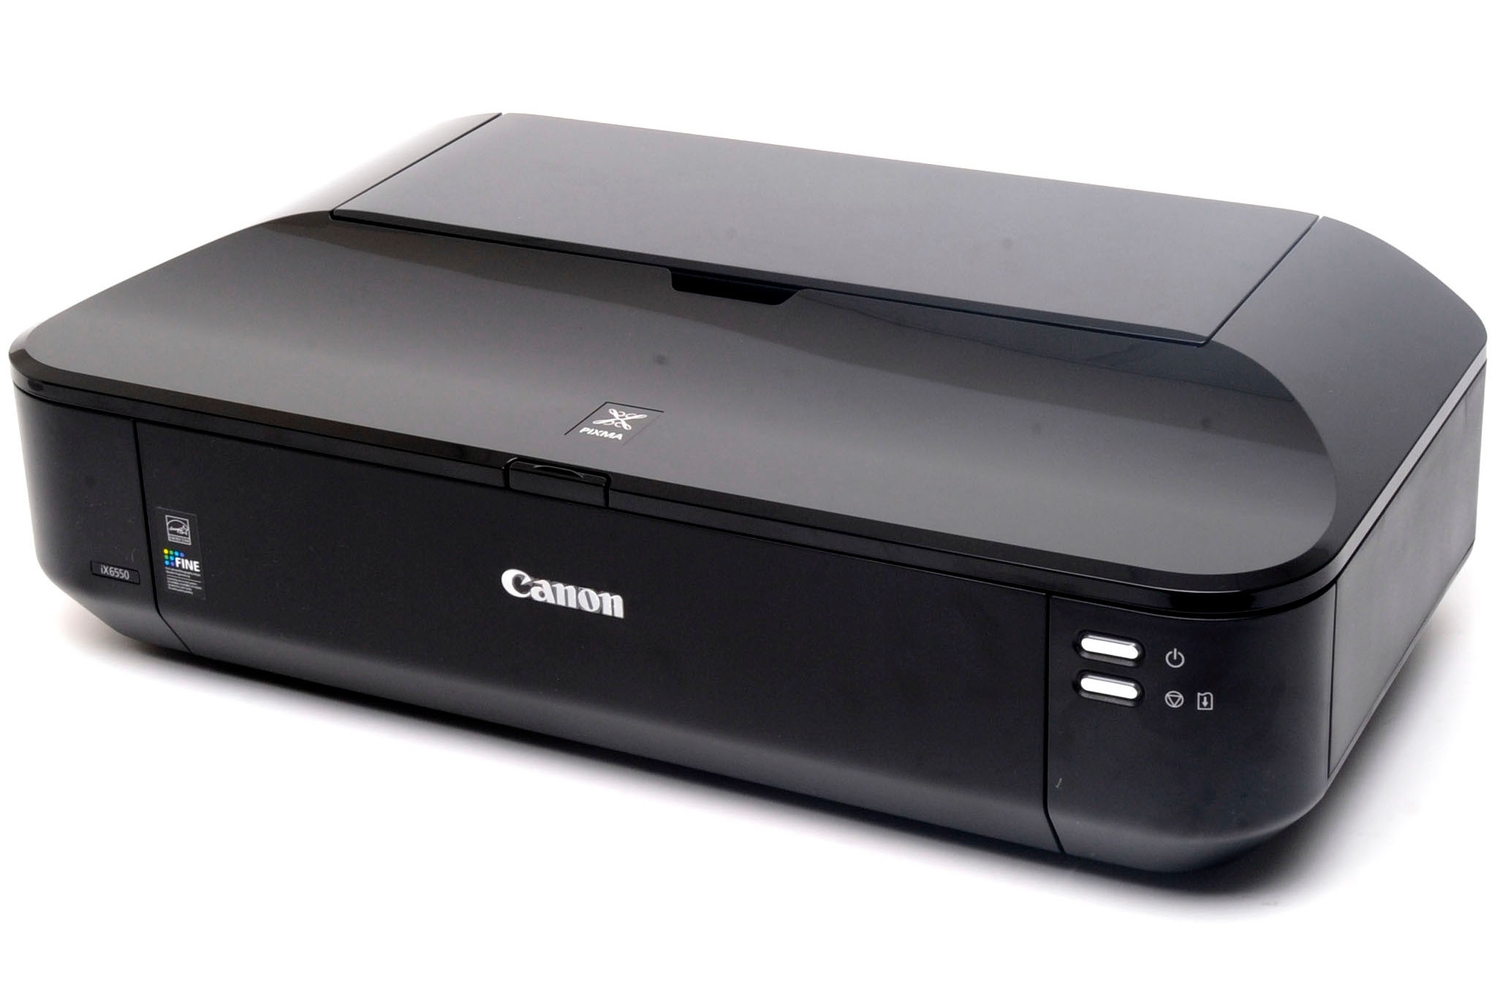 canon pixma ix6550 review this simple office or home printer handles a3 with aplomb printers. Black Bedroom Furniture Sets. Home Design Ideas